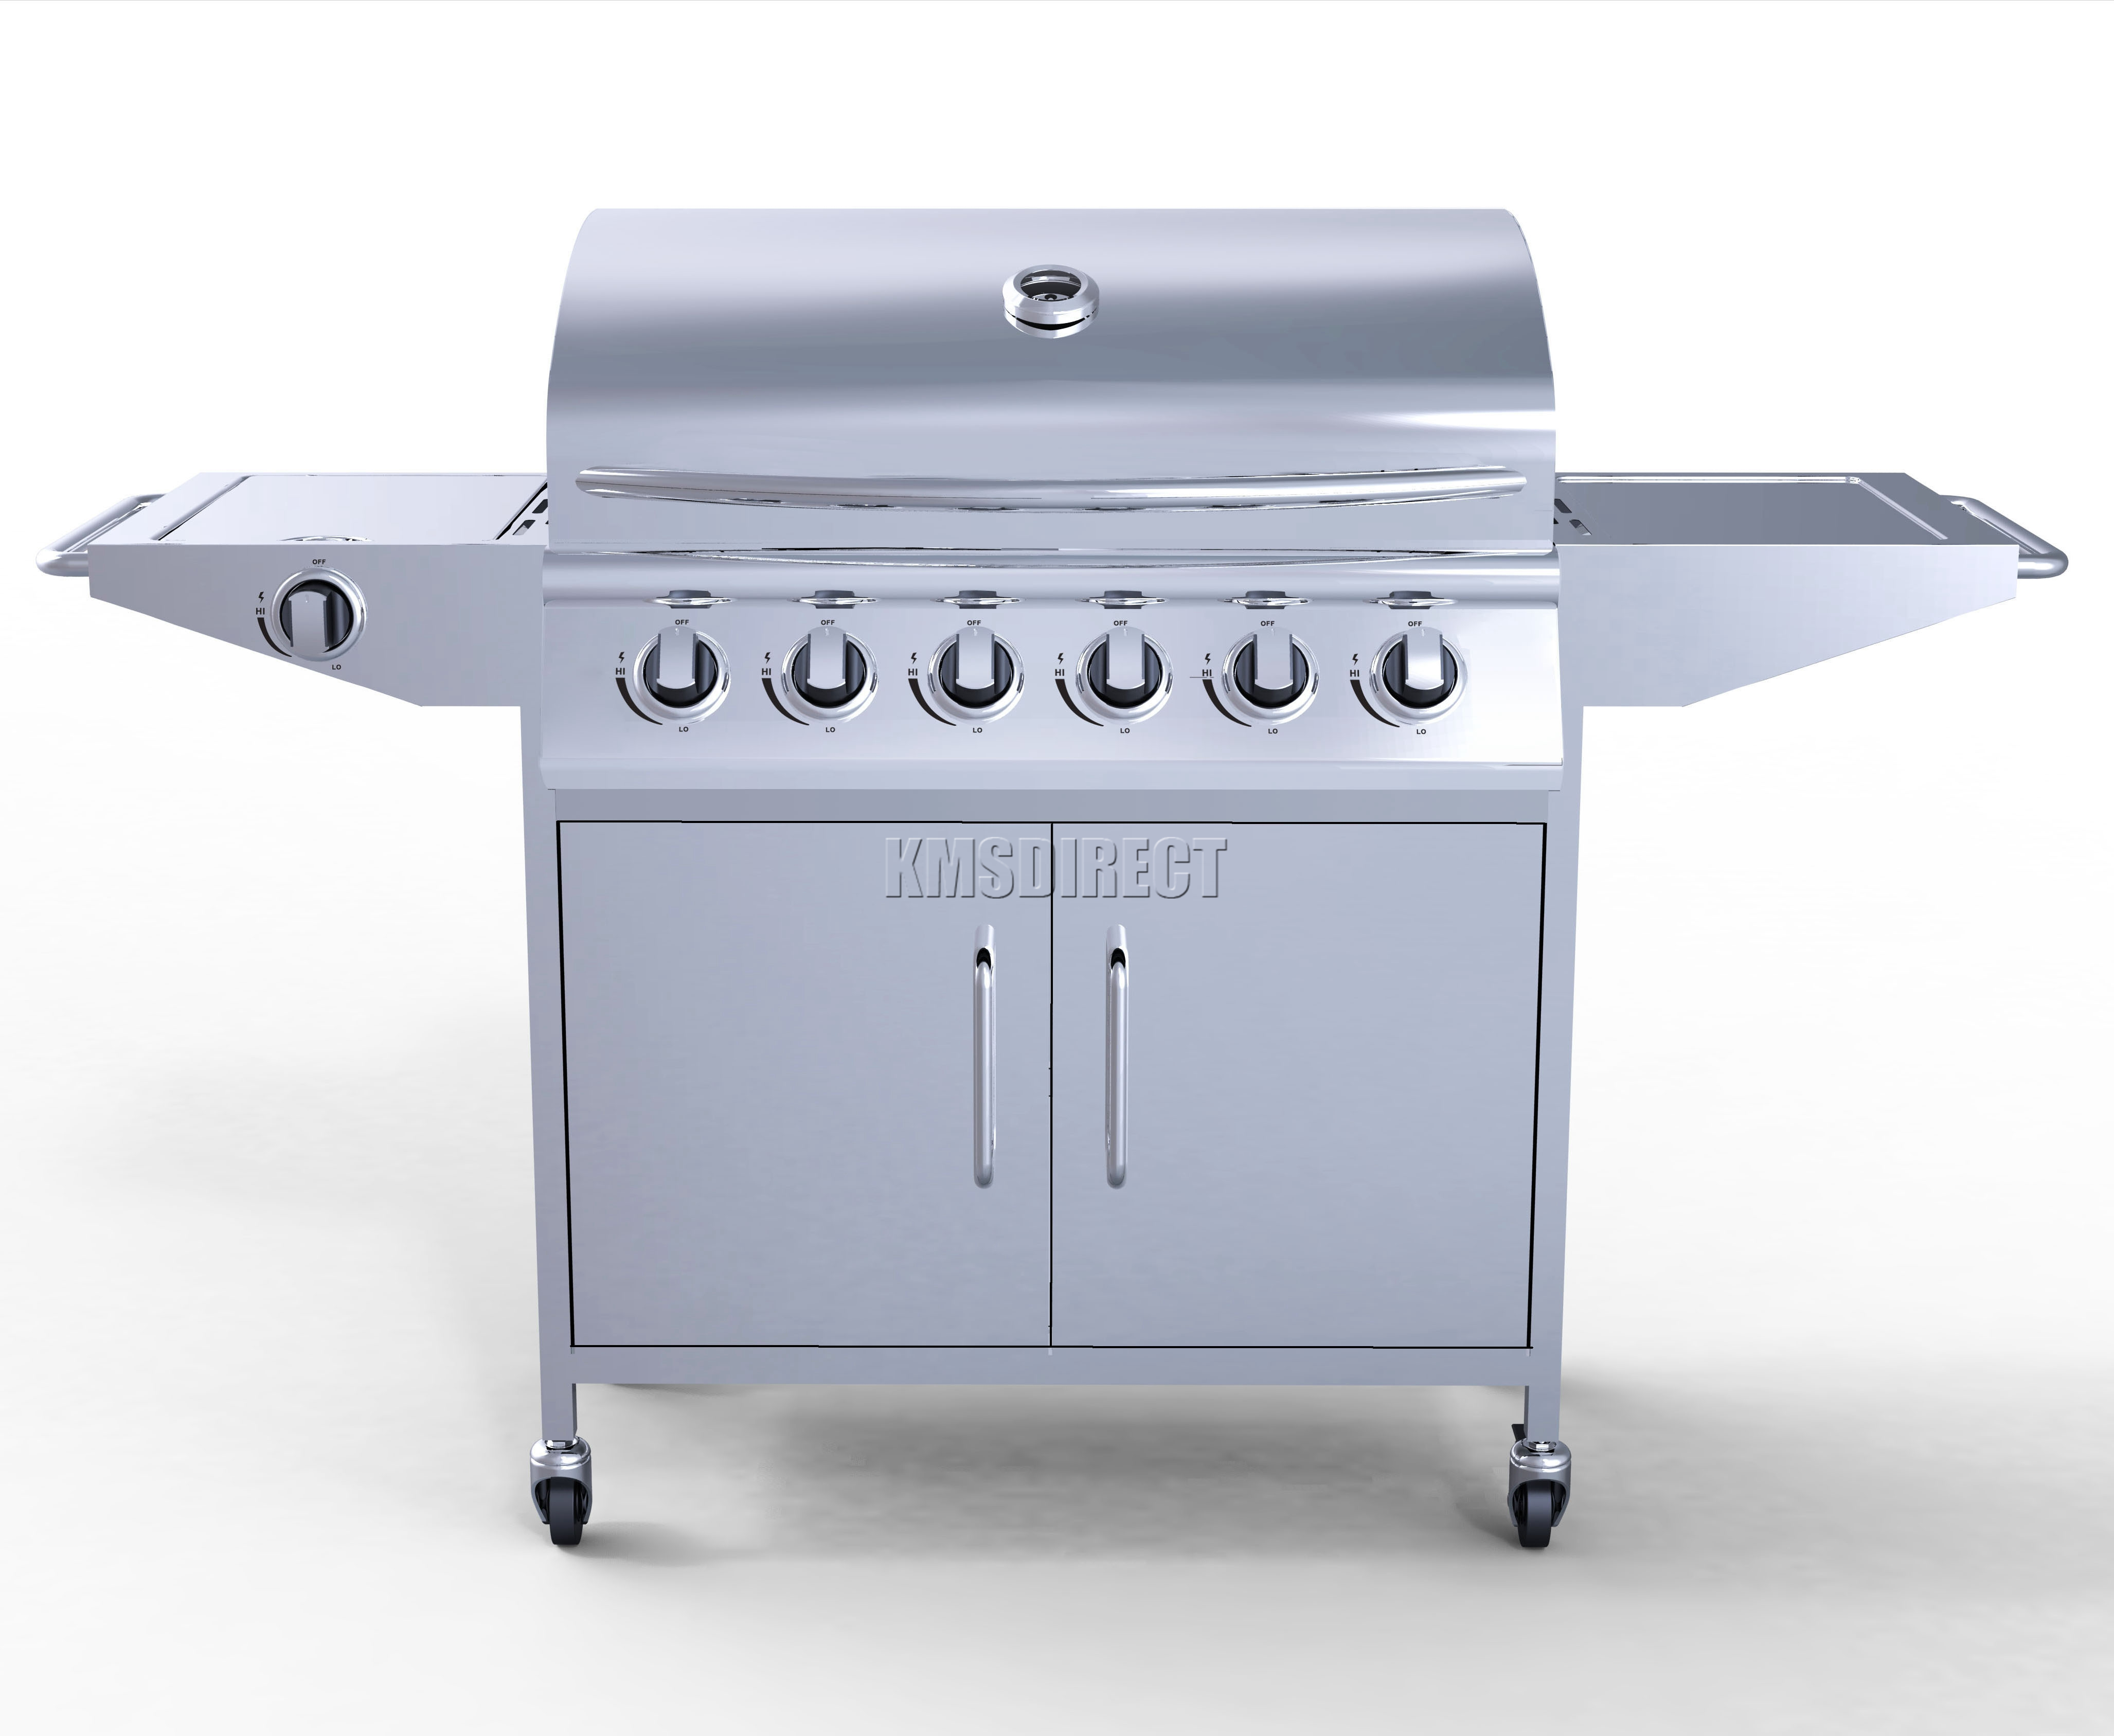 6 burner bbq gas grill stainless steel barbecue 1 side silver outdoor portable ebay - Grill for bbq stainless steel ...